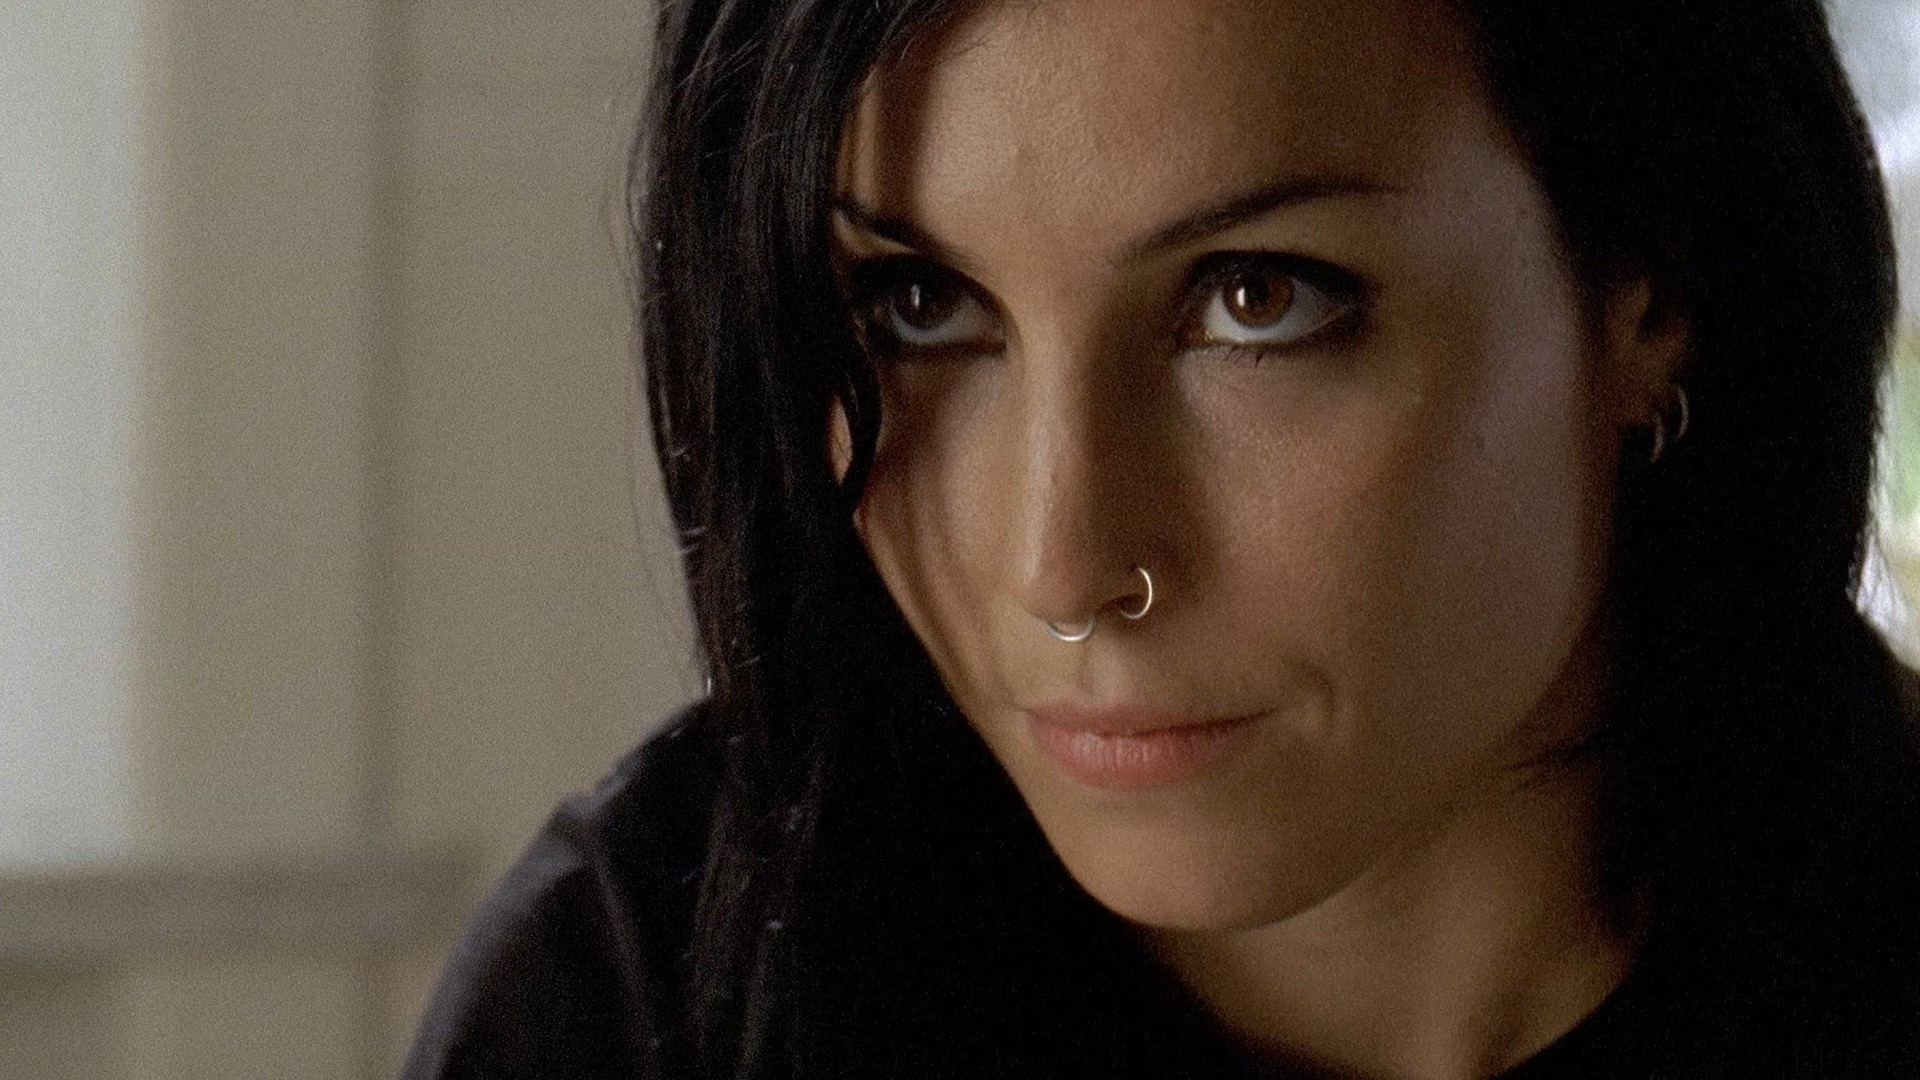 1920x1080 - Noomi Rapace Wallpapers 3